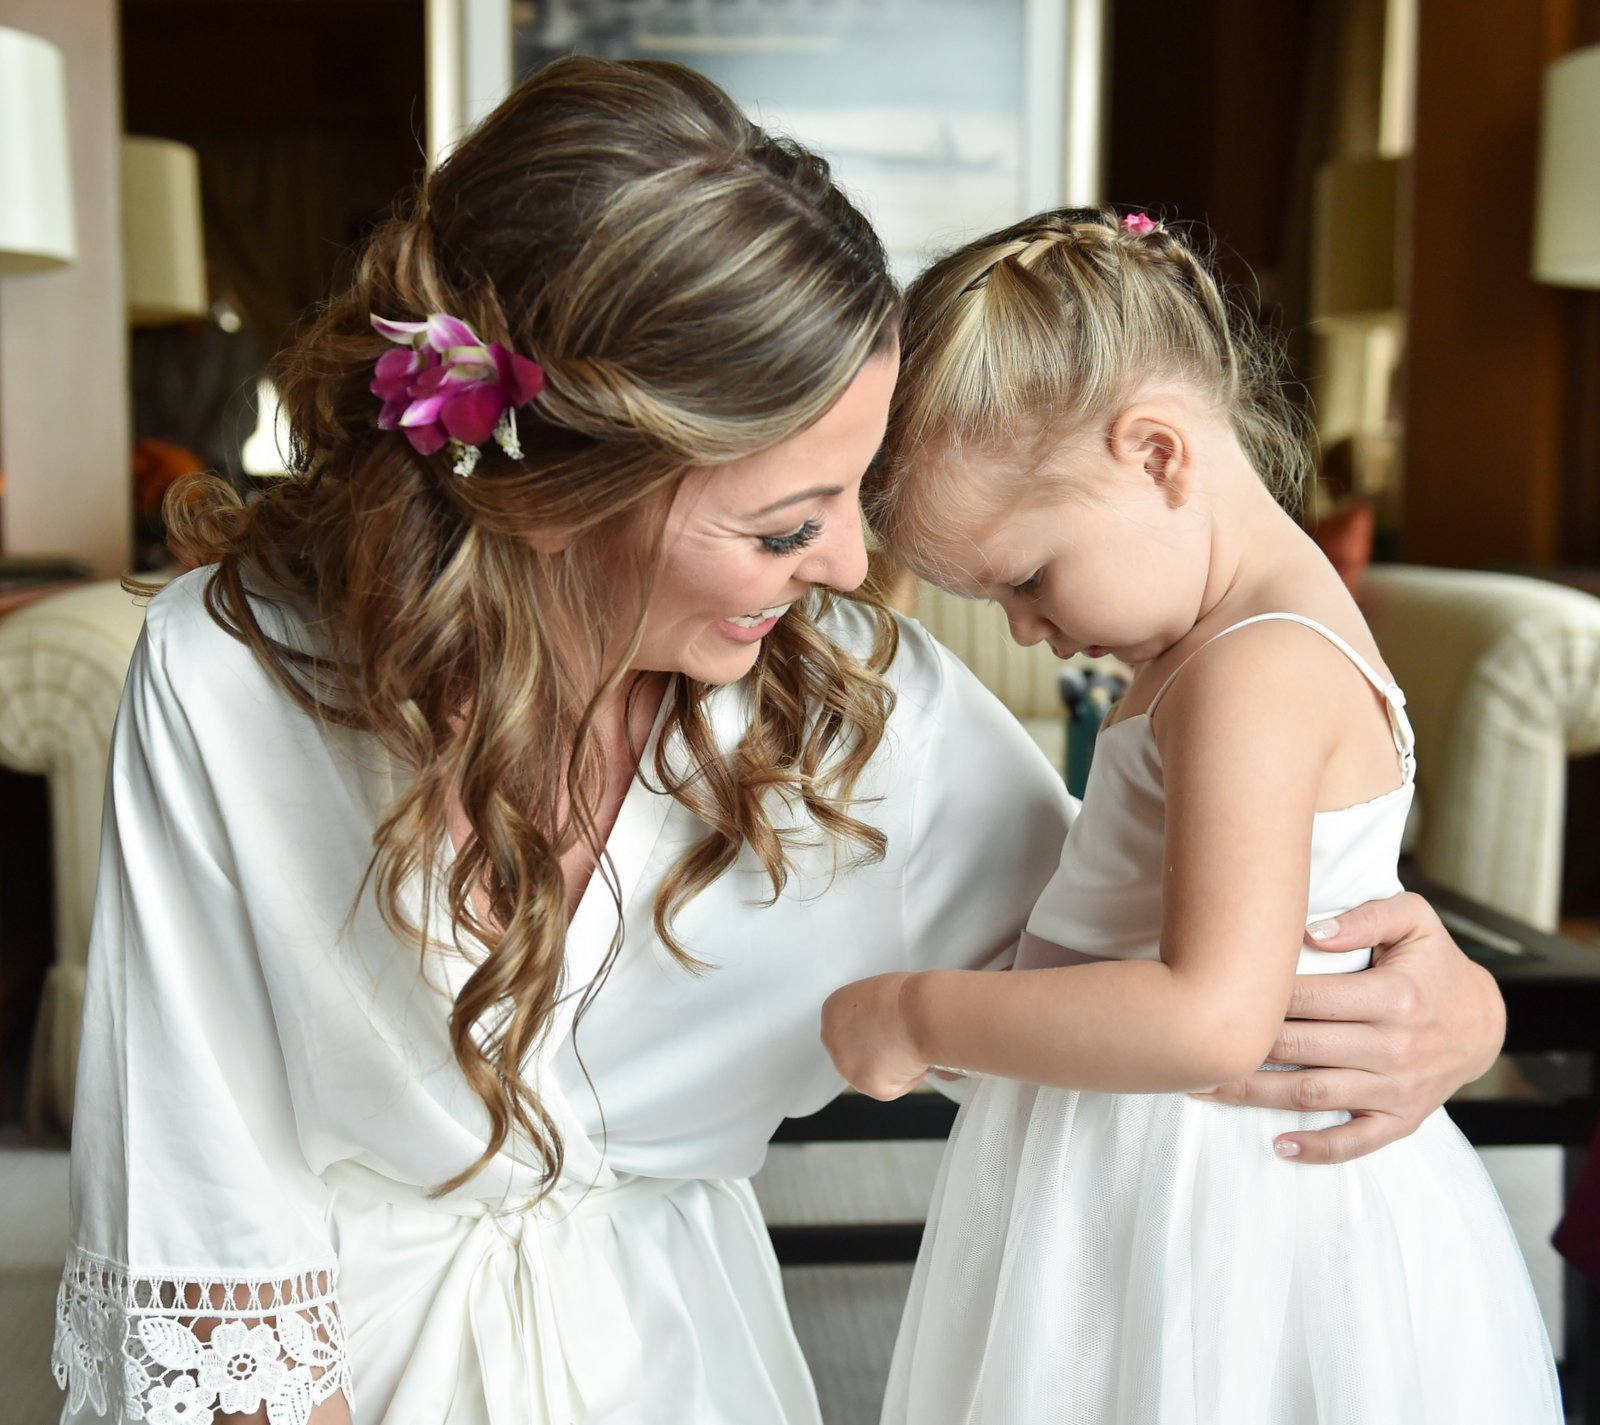 Cute photo of a bride with her flower girl at the Peninsula Hotel, Bangkok